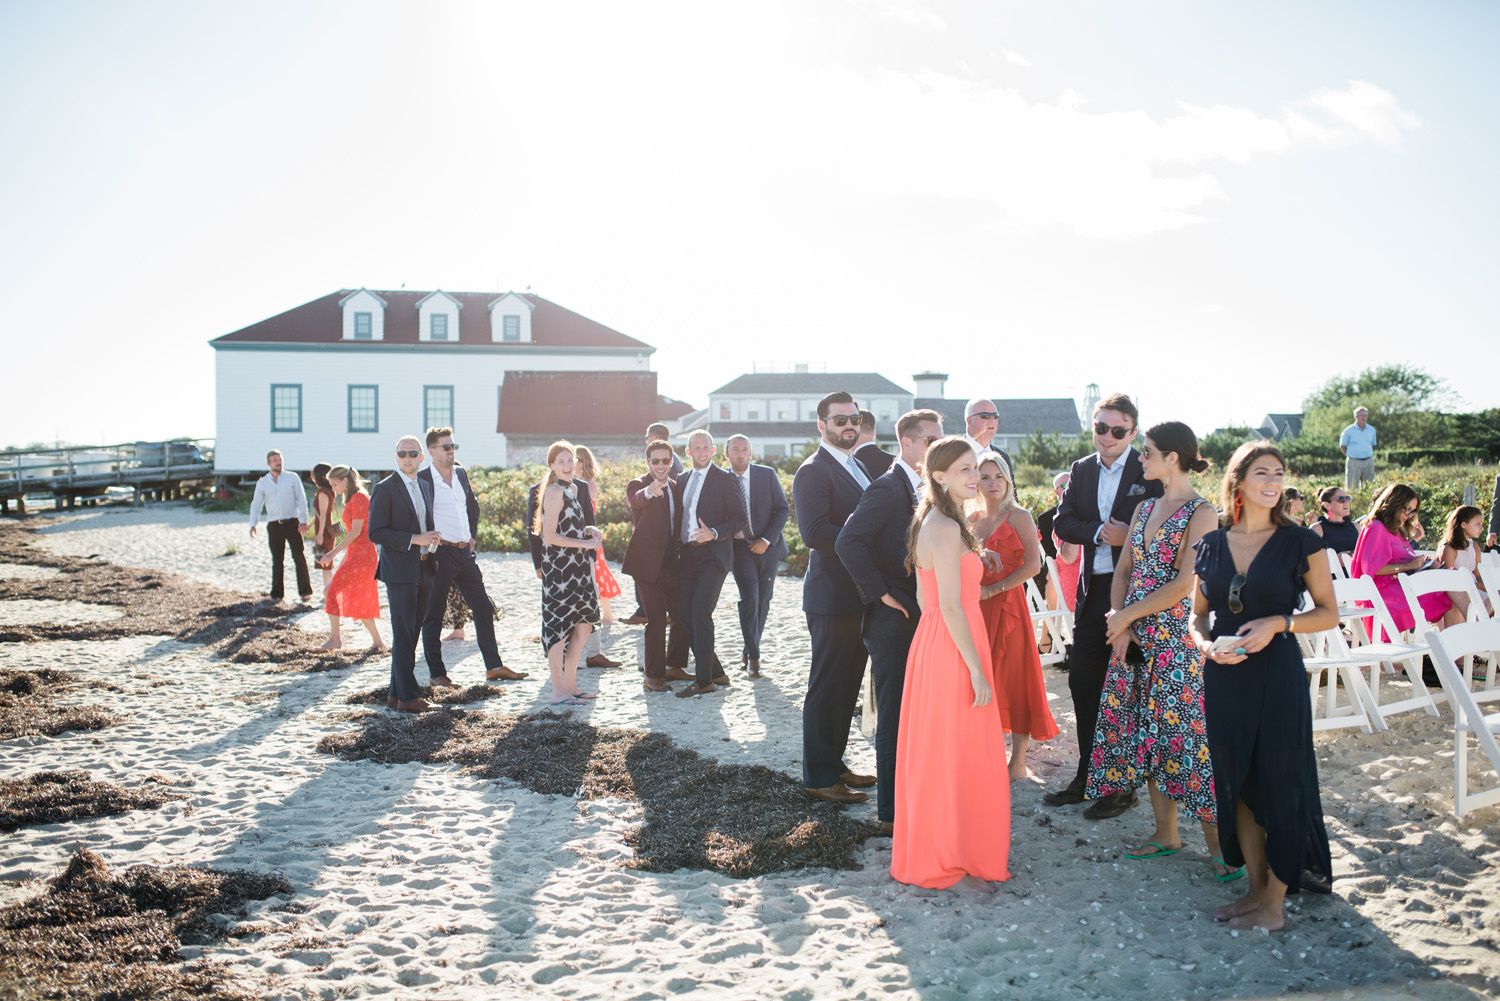 Brant_Point_Nantucket_Hotel_Wedding_Photography_085.jpg